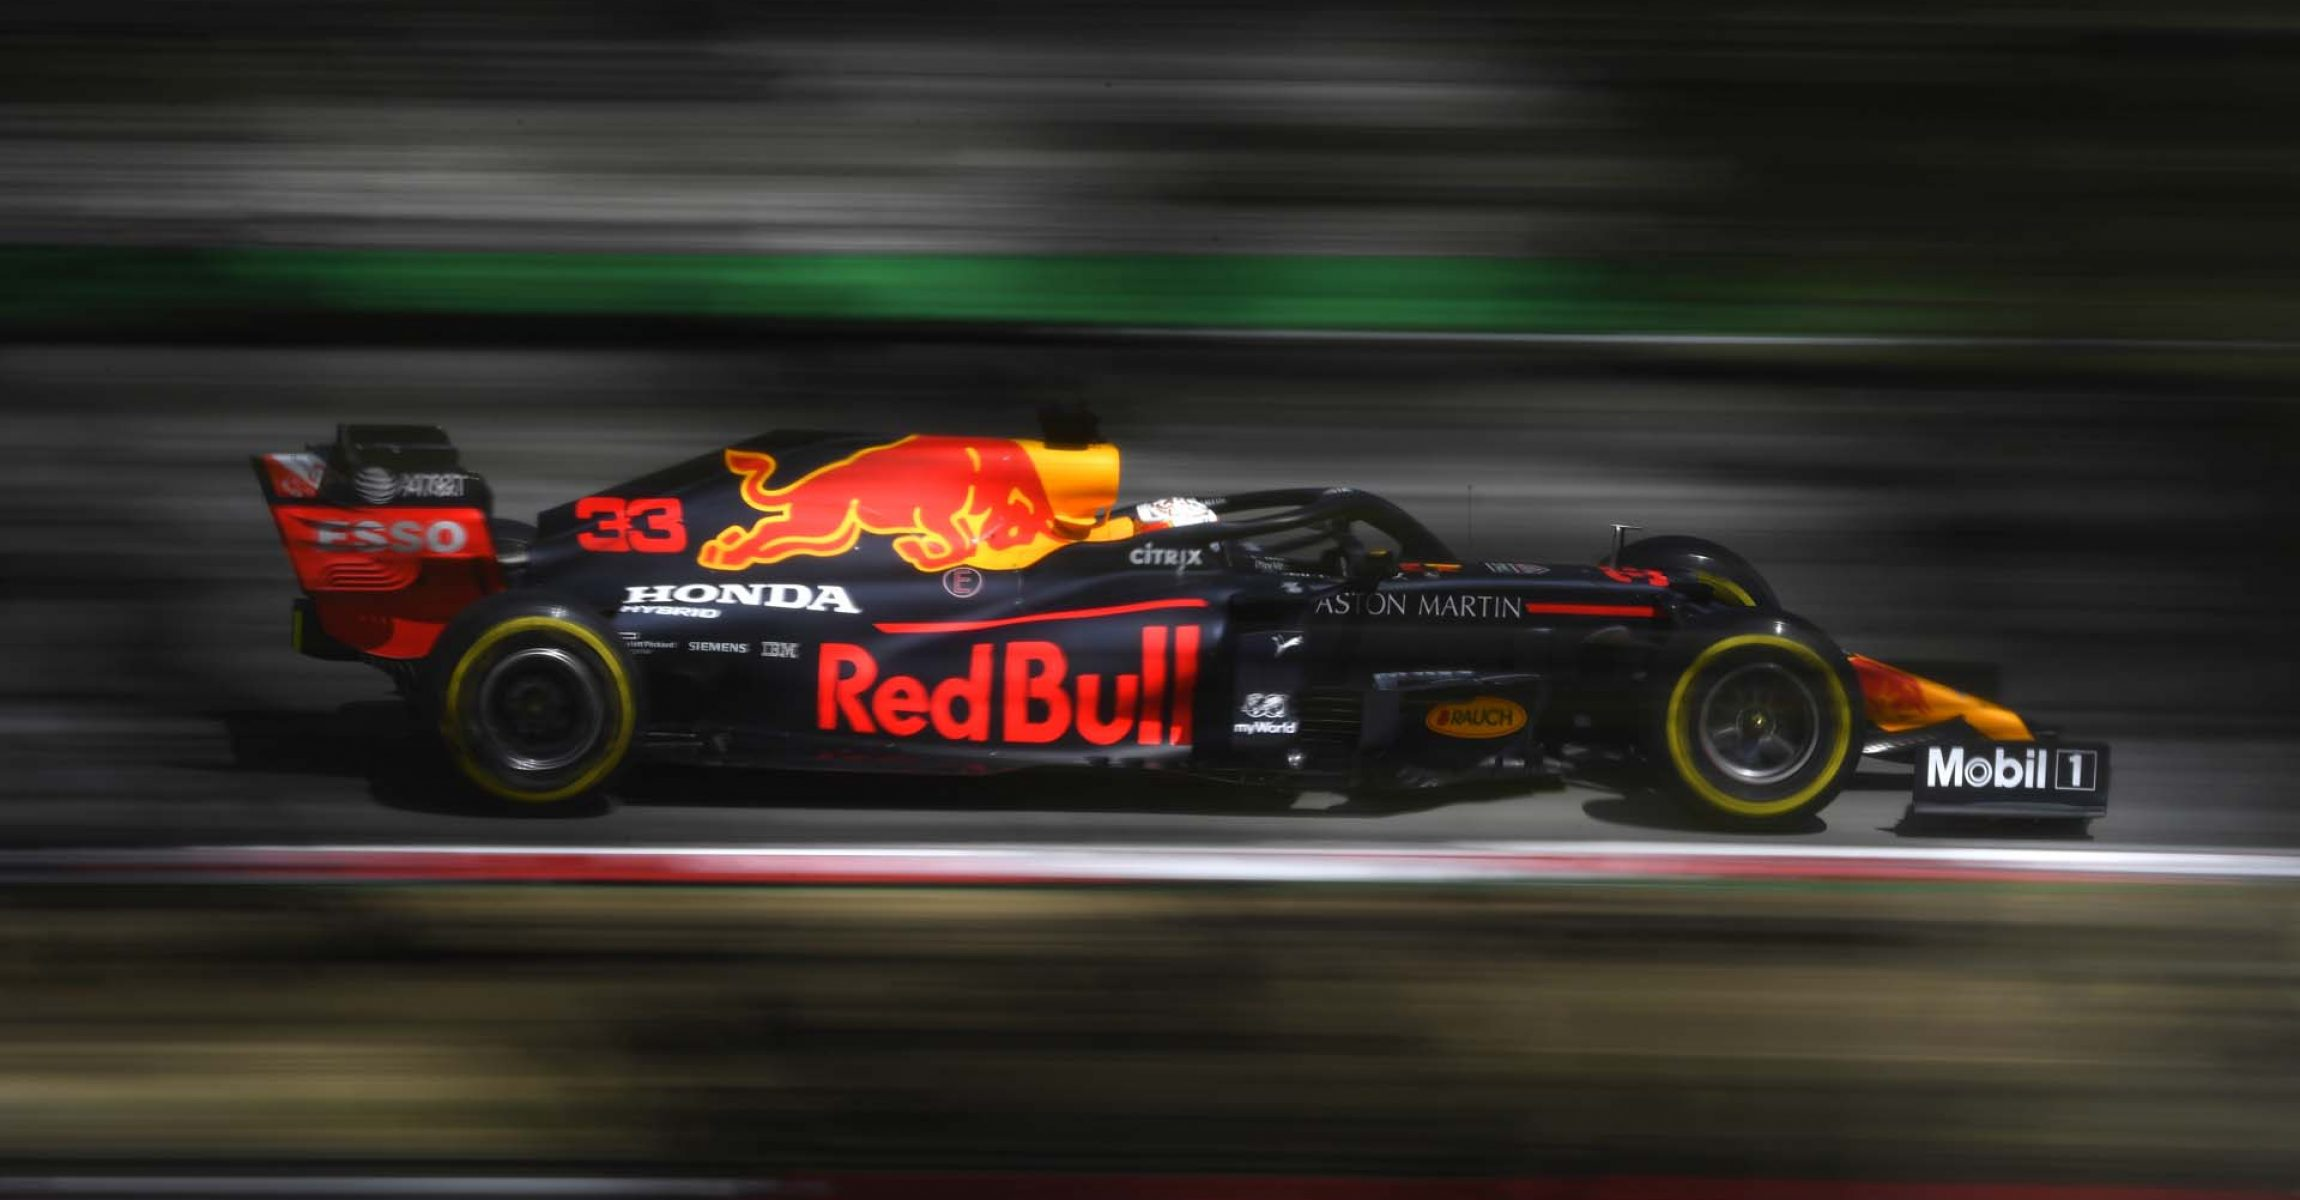 BARCELONA, SPAIN - AUGUST 14: Max Verstappen of the Netherlands driving the (33) Aston Martin Red Bull Racing RB16 on track during practice for the F1 Grand Prix of Spain at Circuit de Barcelona-Catalunya on August 14, 2020 in Barcelona, Spain. (Photo by Rudy Carezzevoli/Getty Images)